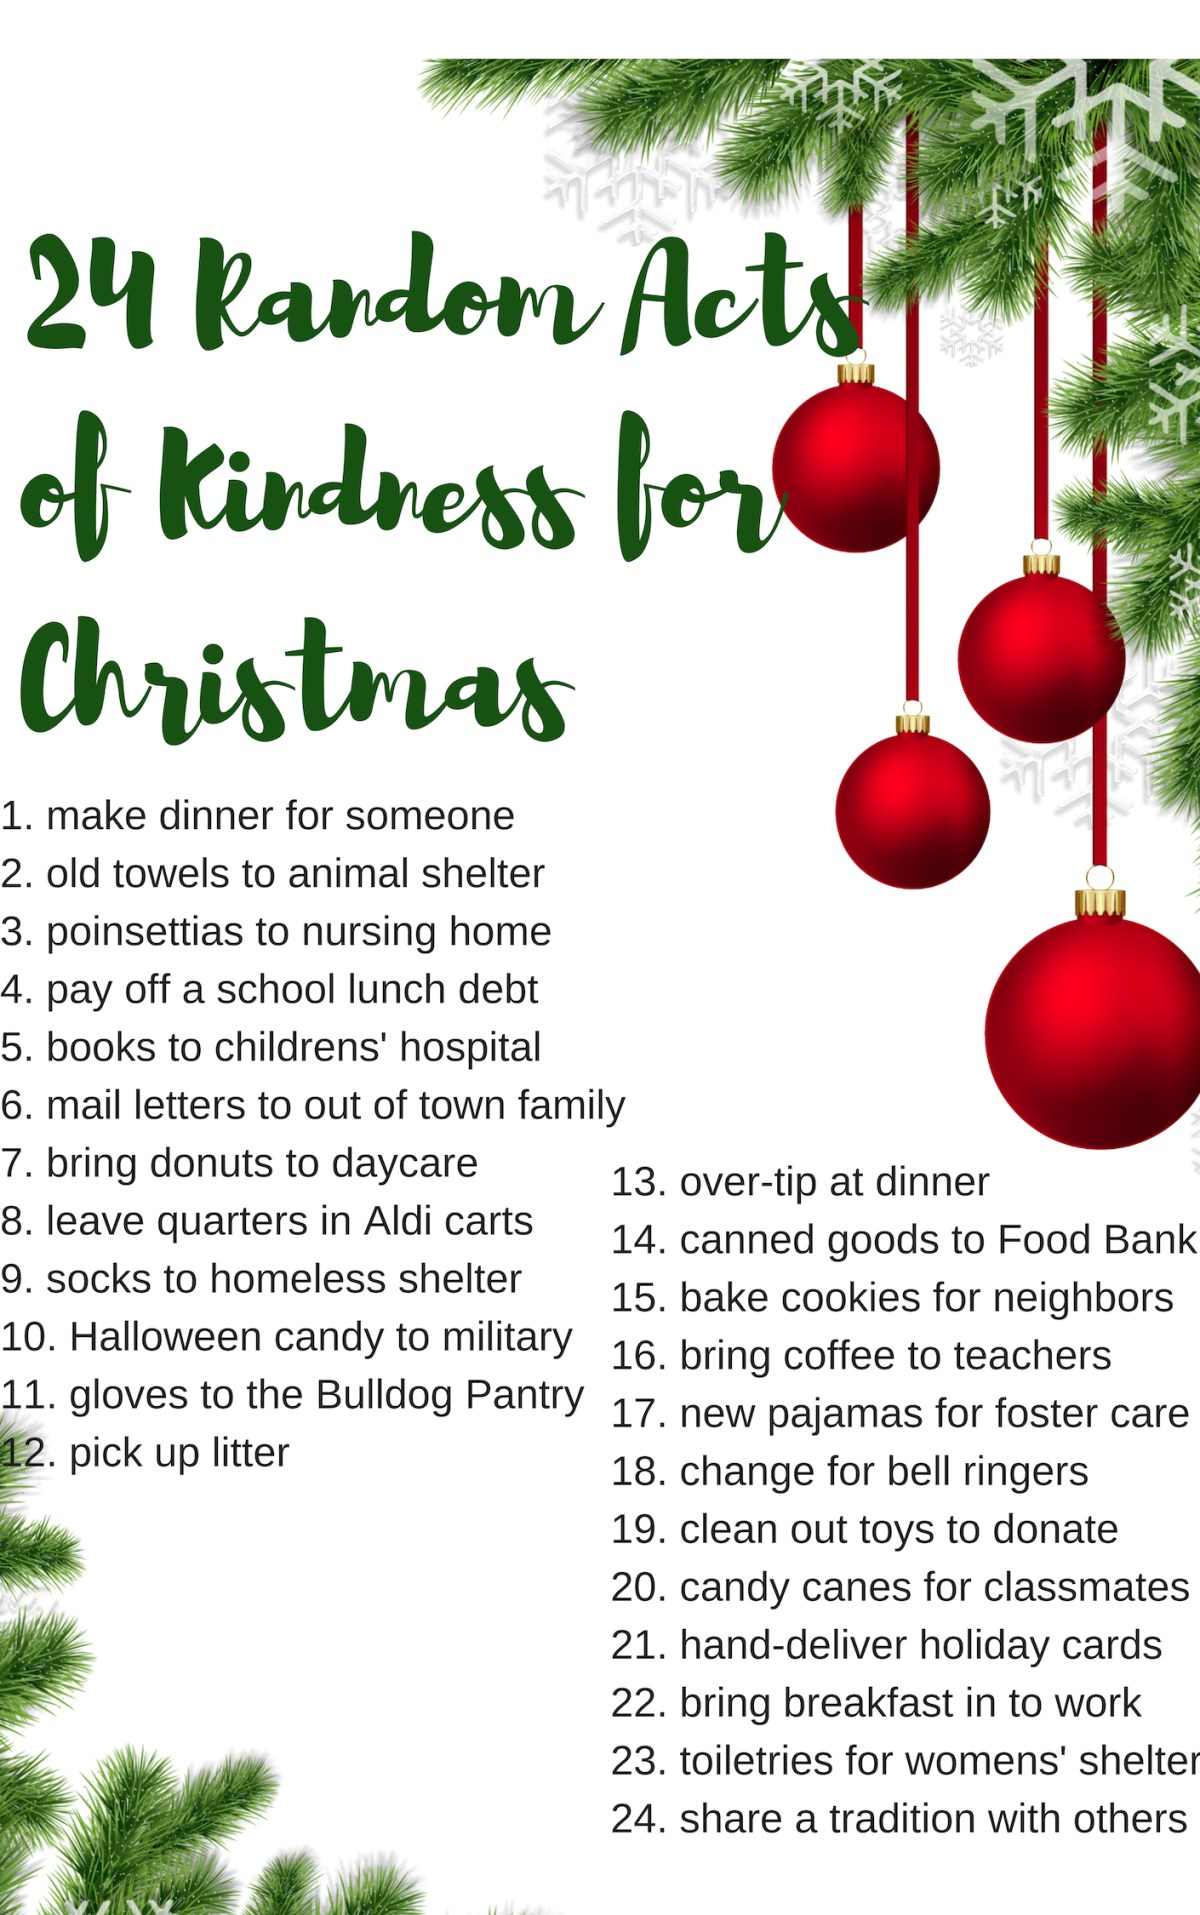 Christmas acts of kindness